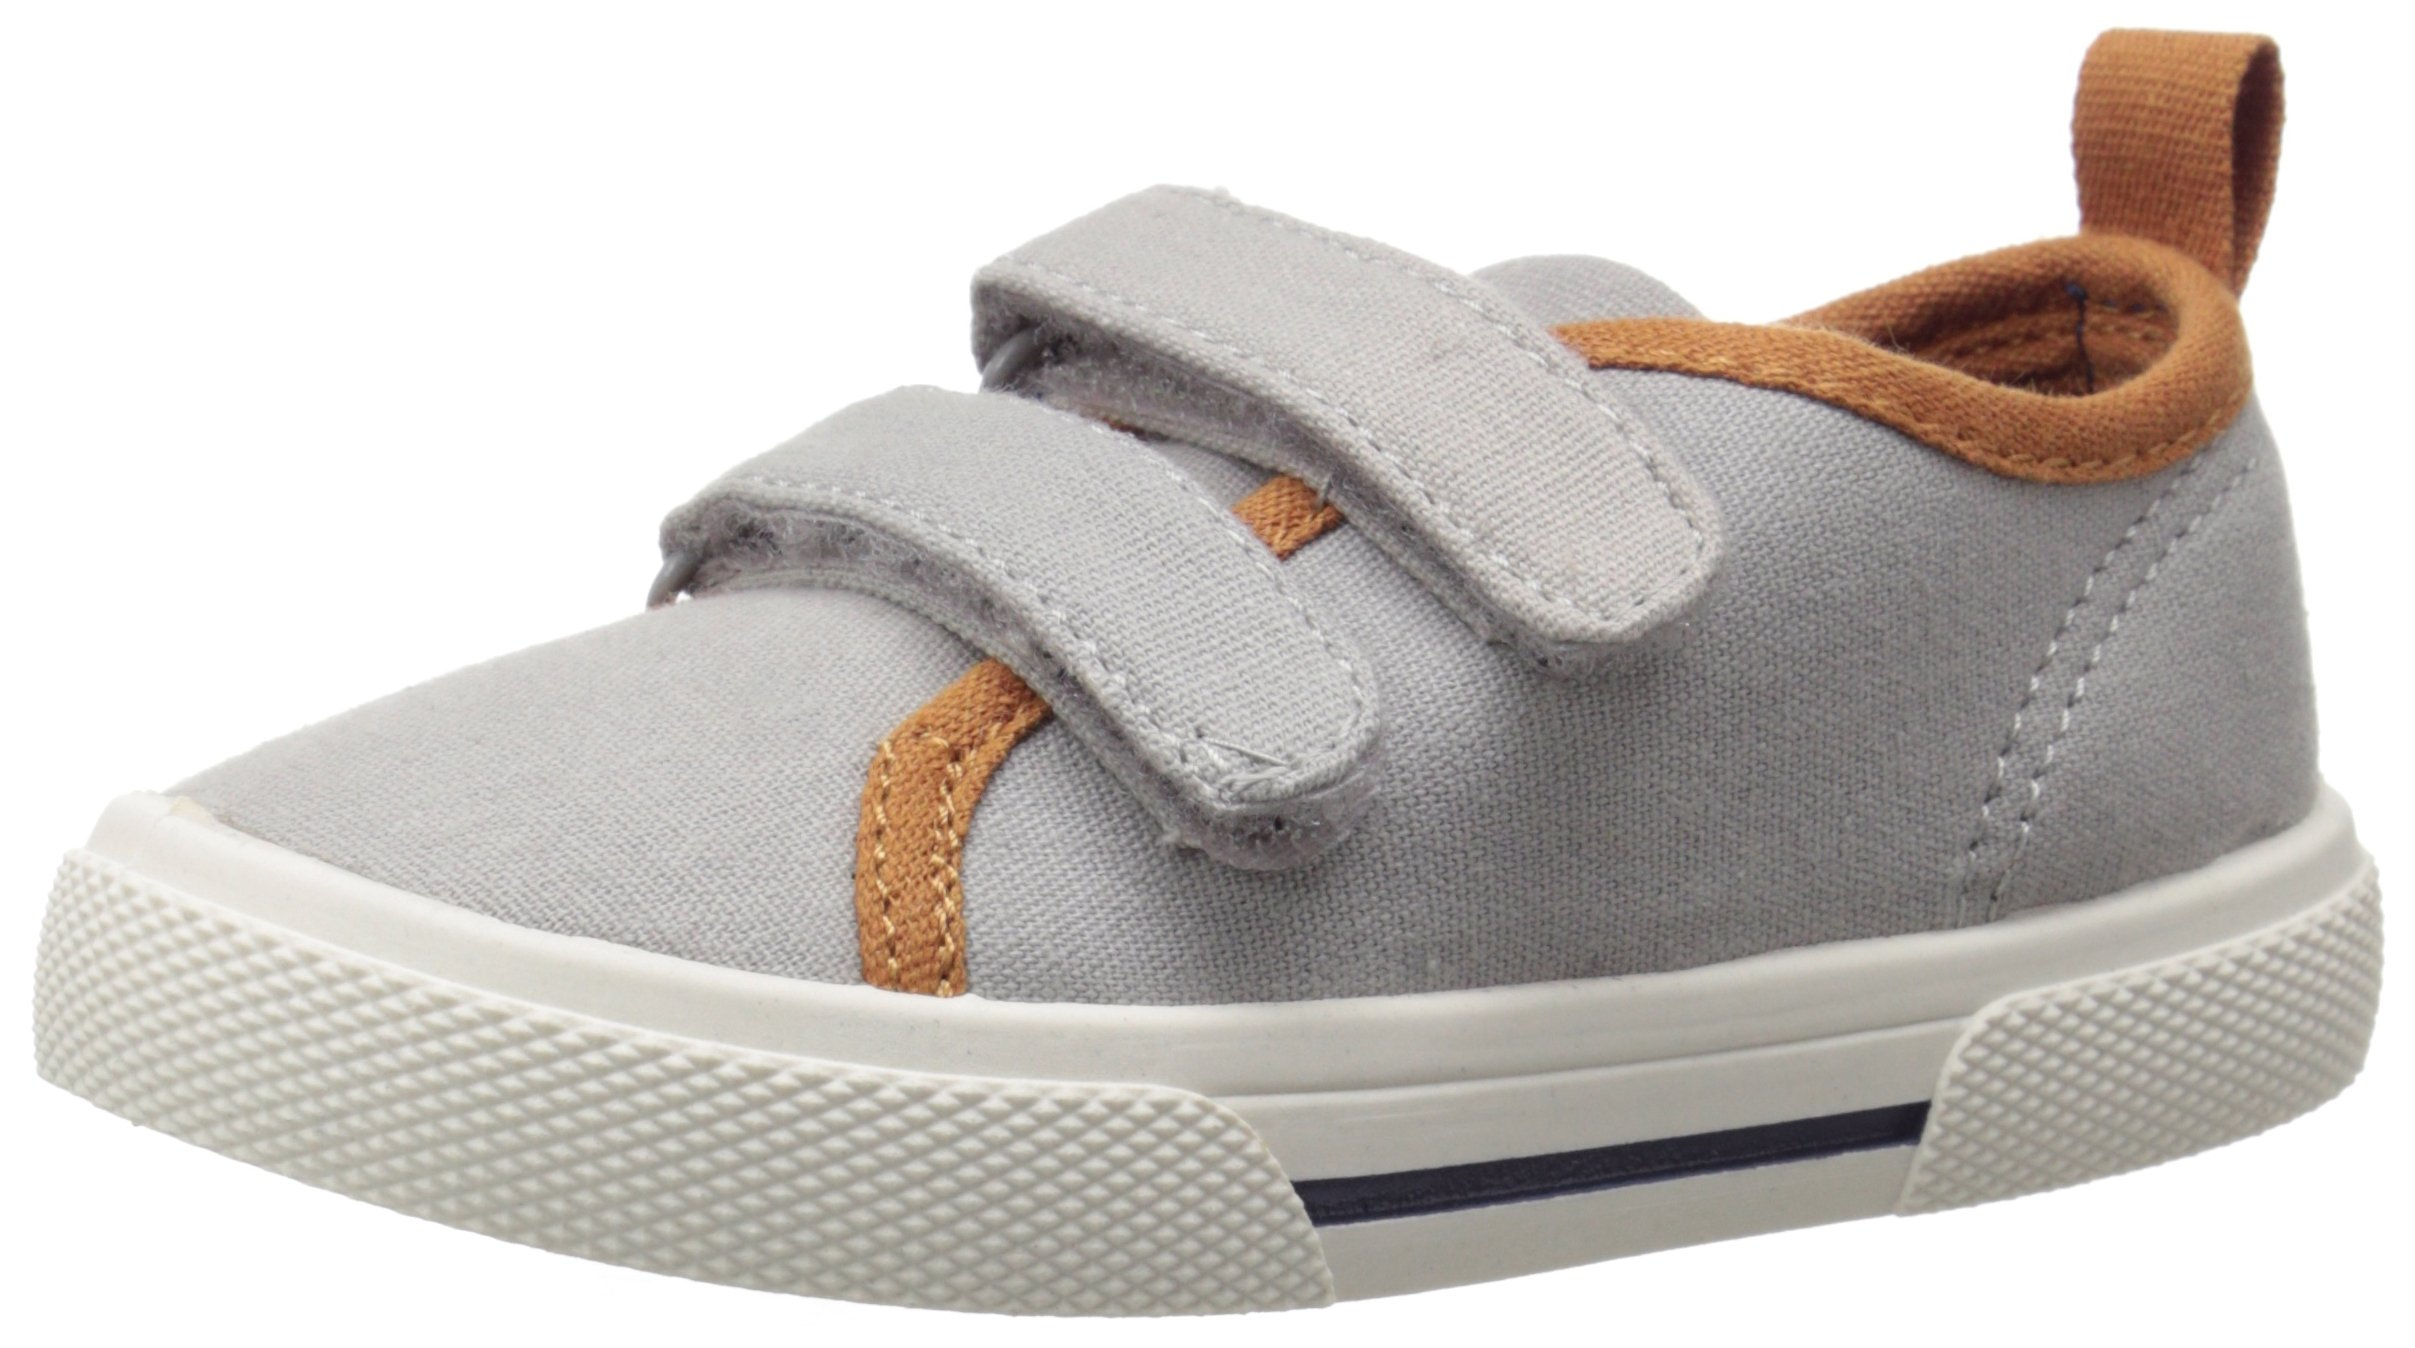 Carter's Skid2 Sneaker (Toddler/Little Kid), Grey, 12 M US Little Kid